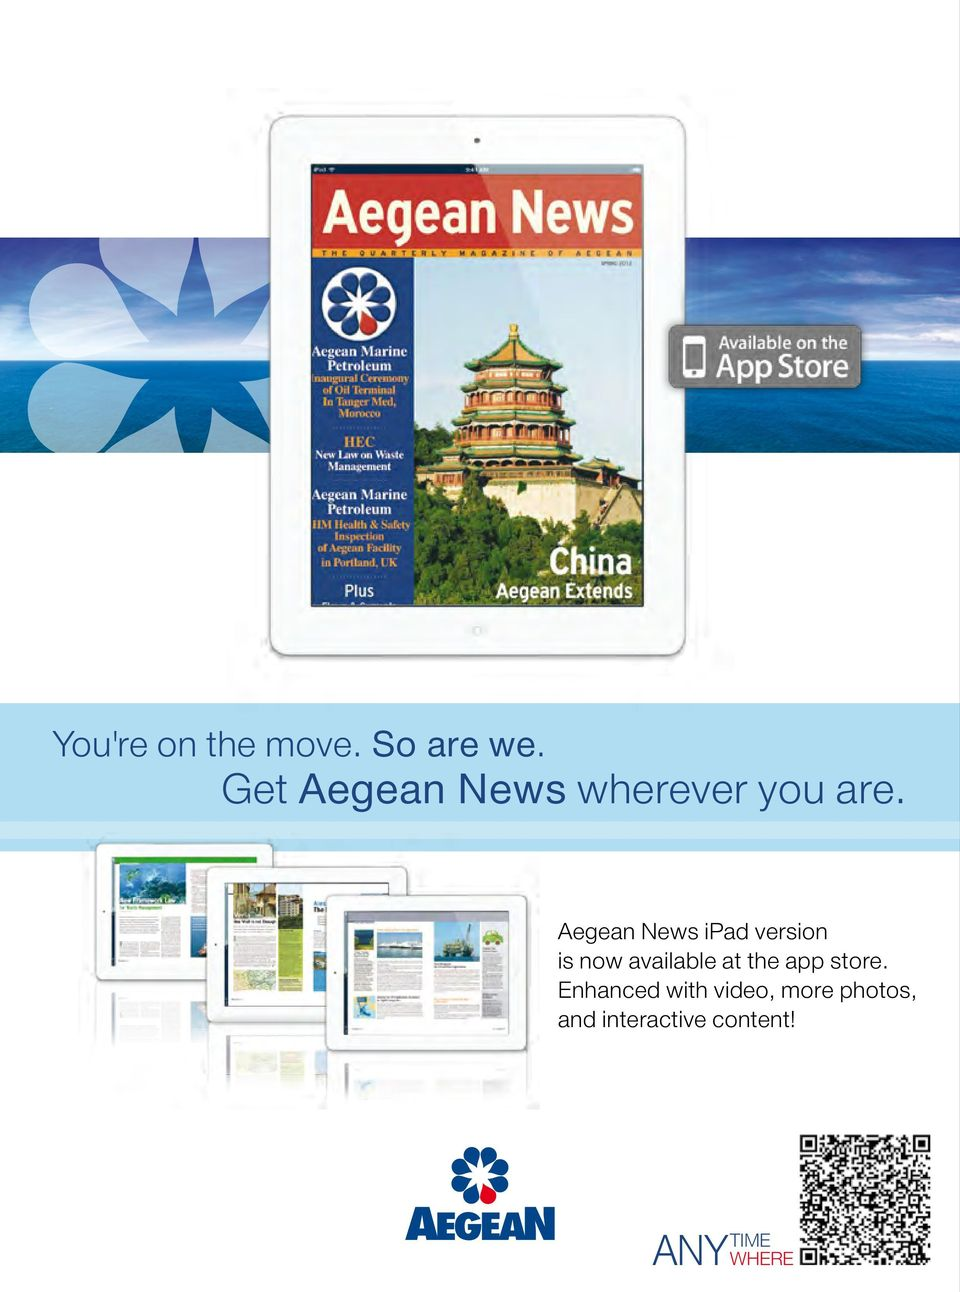 Aegean News ipad version is now available at the